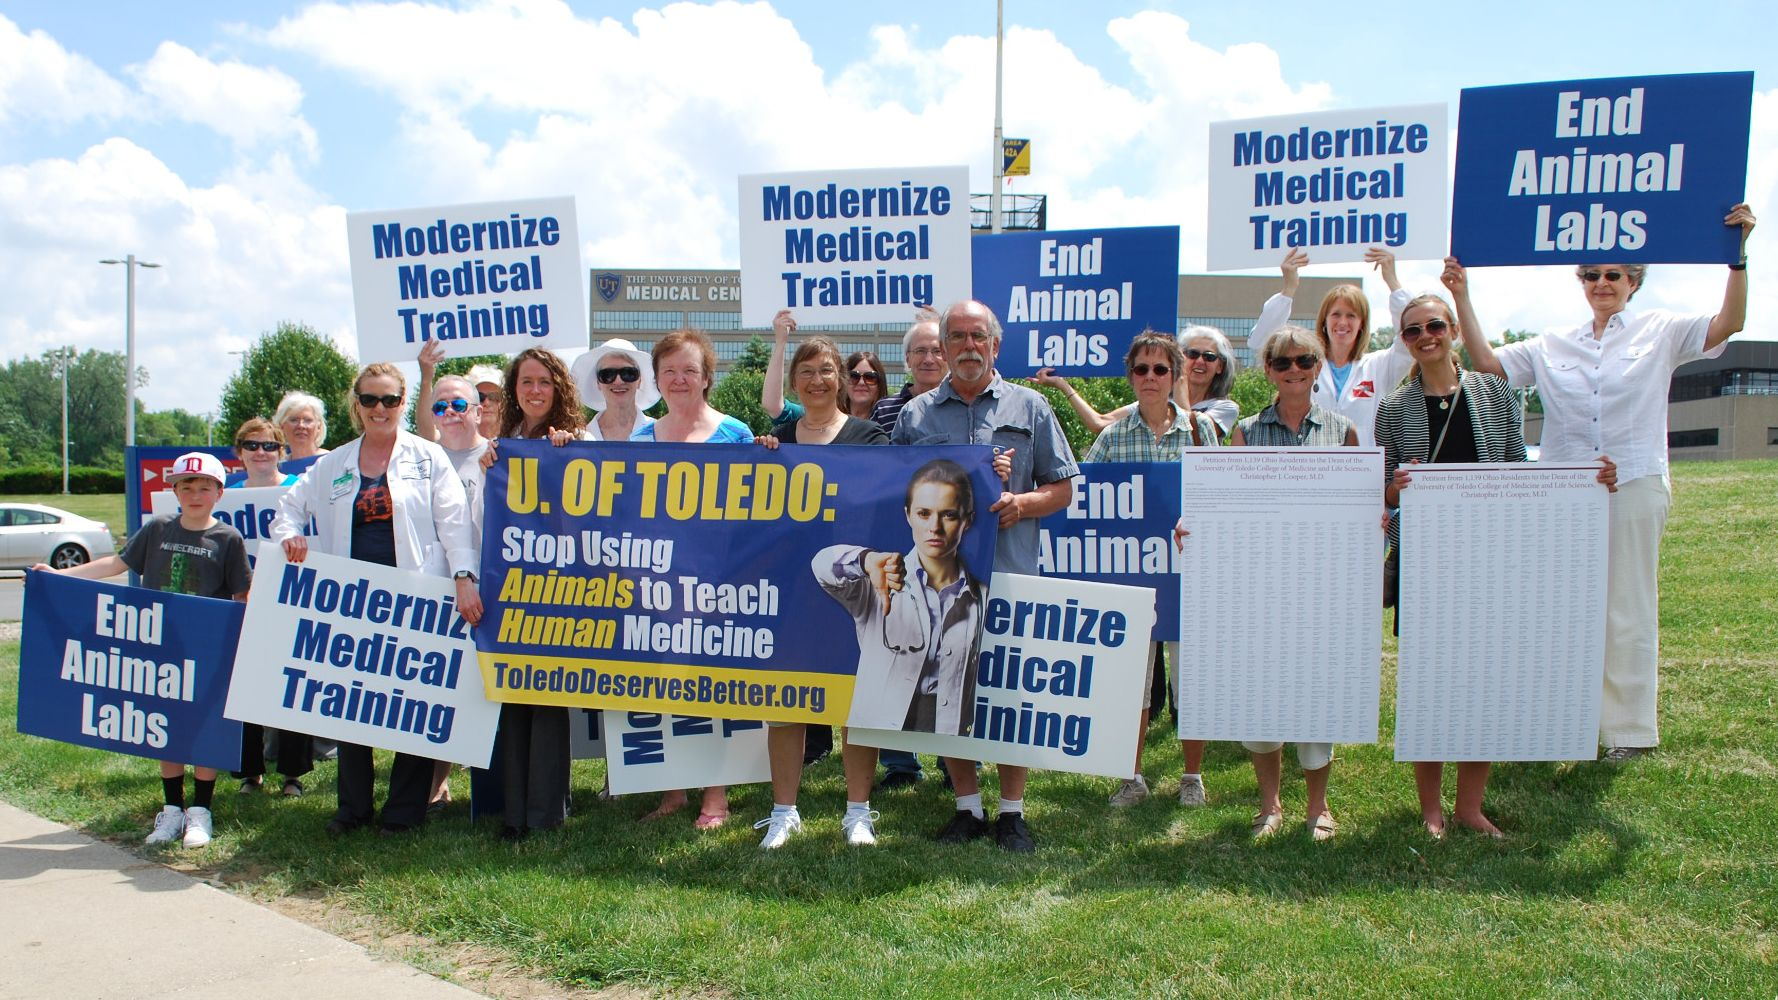 Tell the University of Toledo: Stop Using Animals for Medical Training